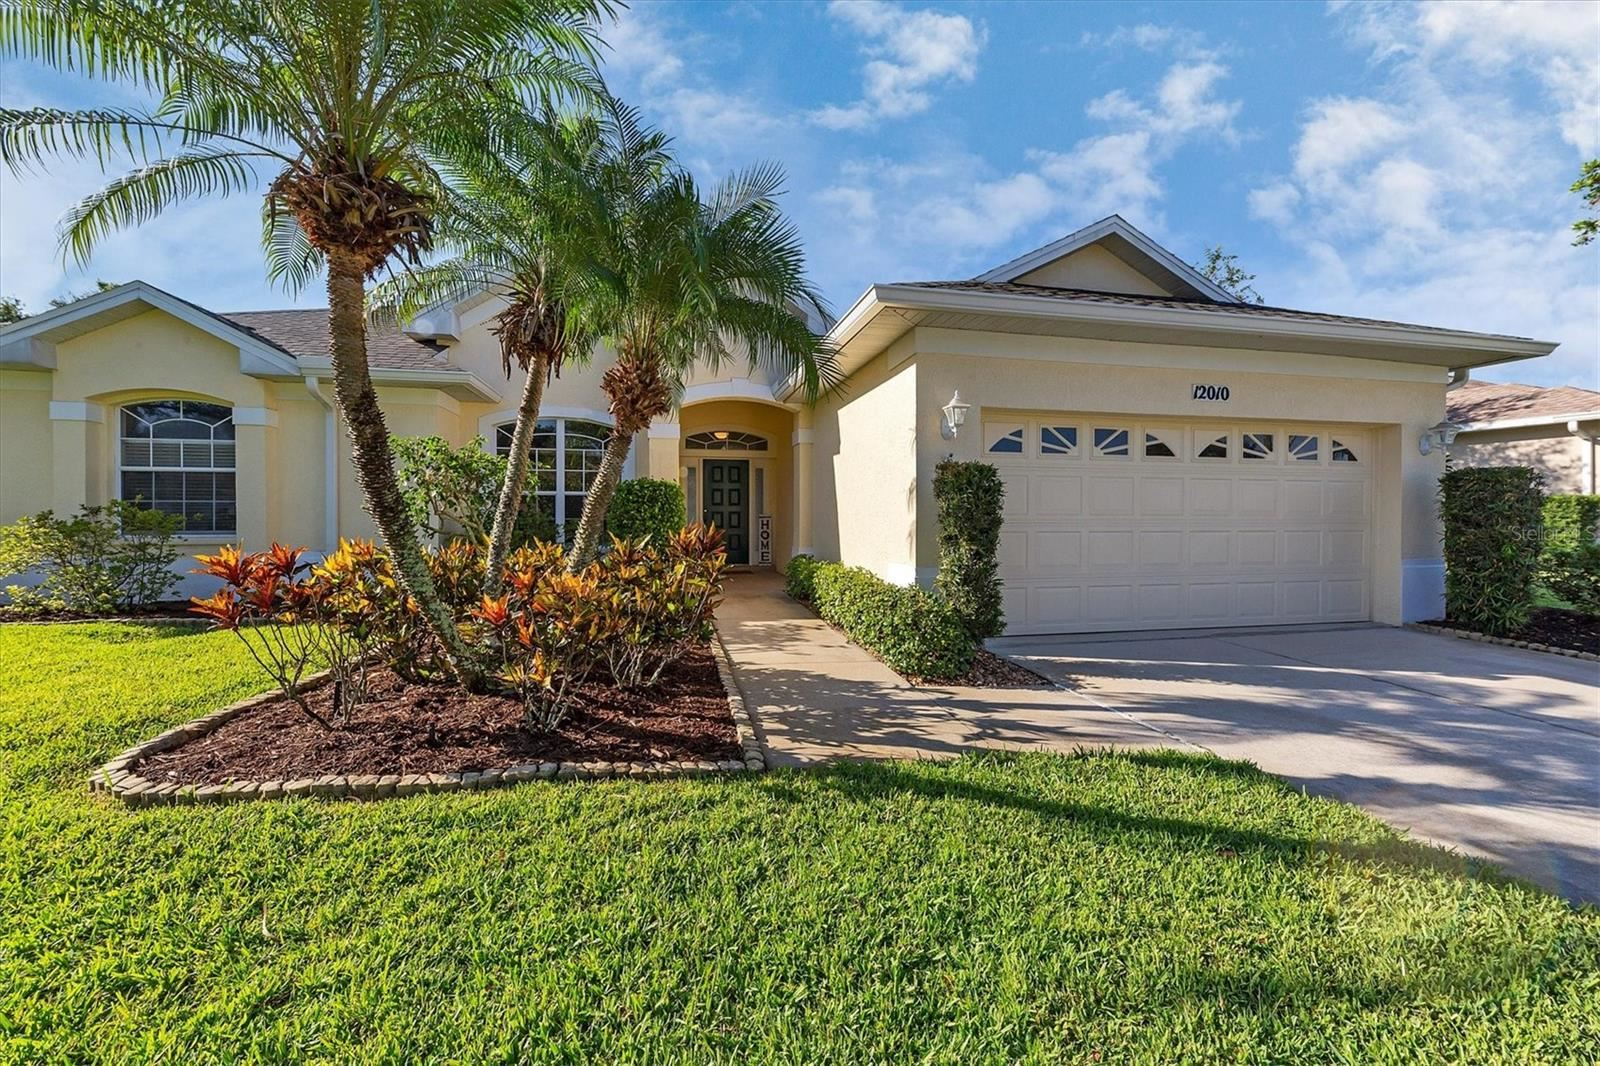 Photo for 12010 SUMMER MEADOW DRIVE, LAKEWOOD RANCH, FL 34202 (MLS # A4508388)